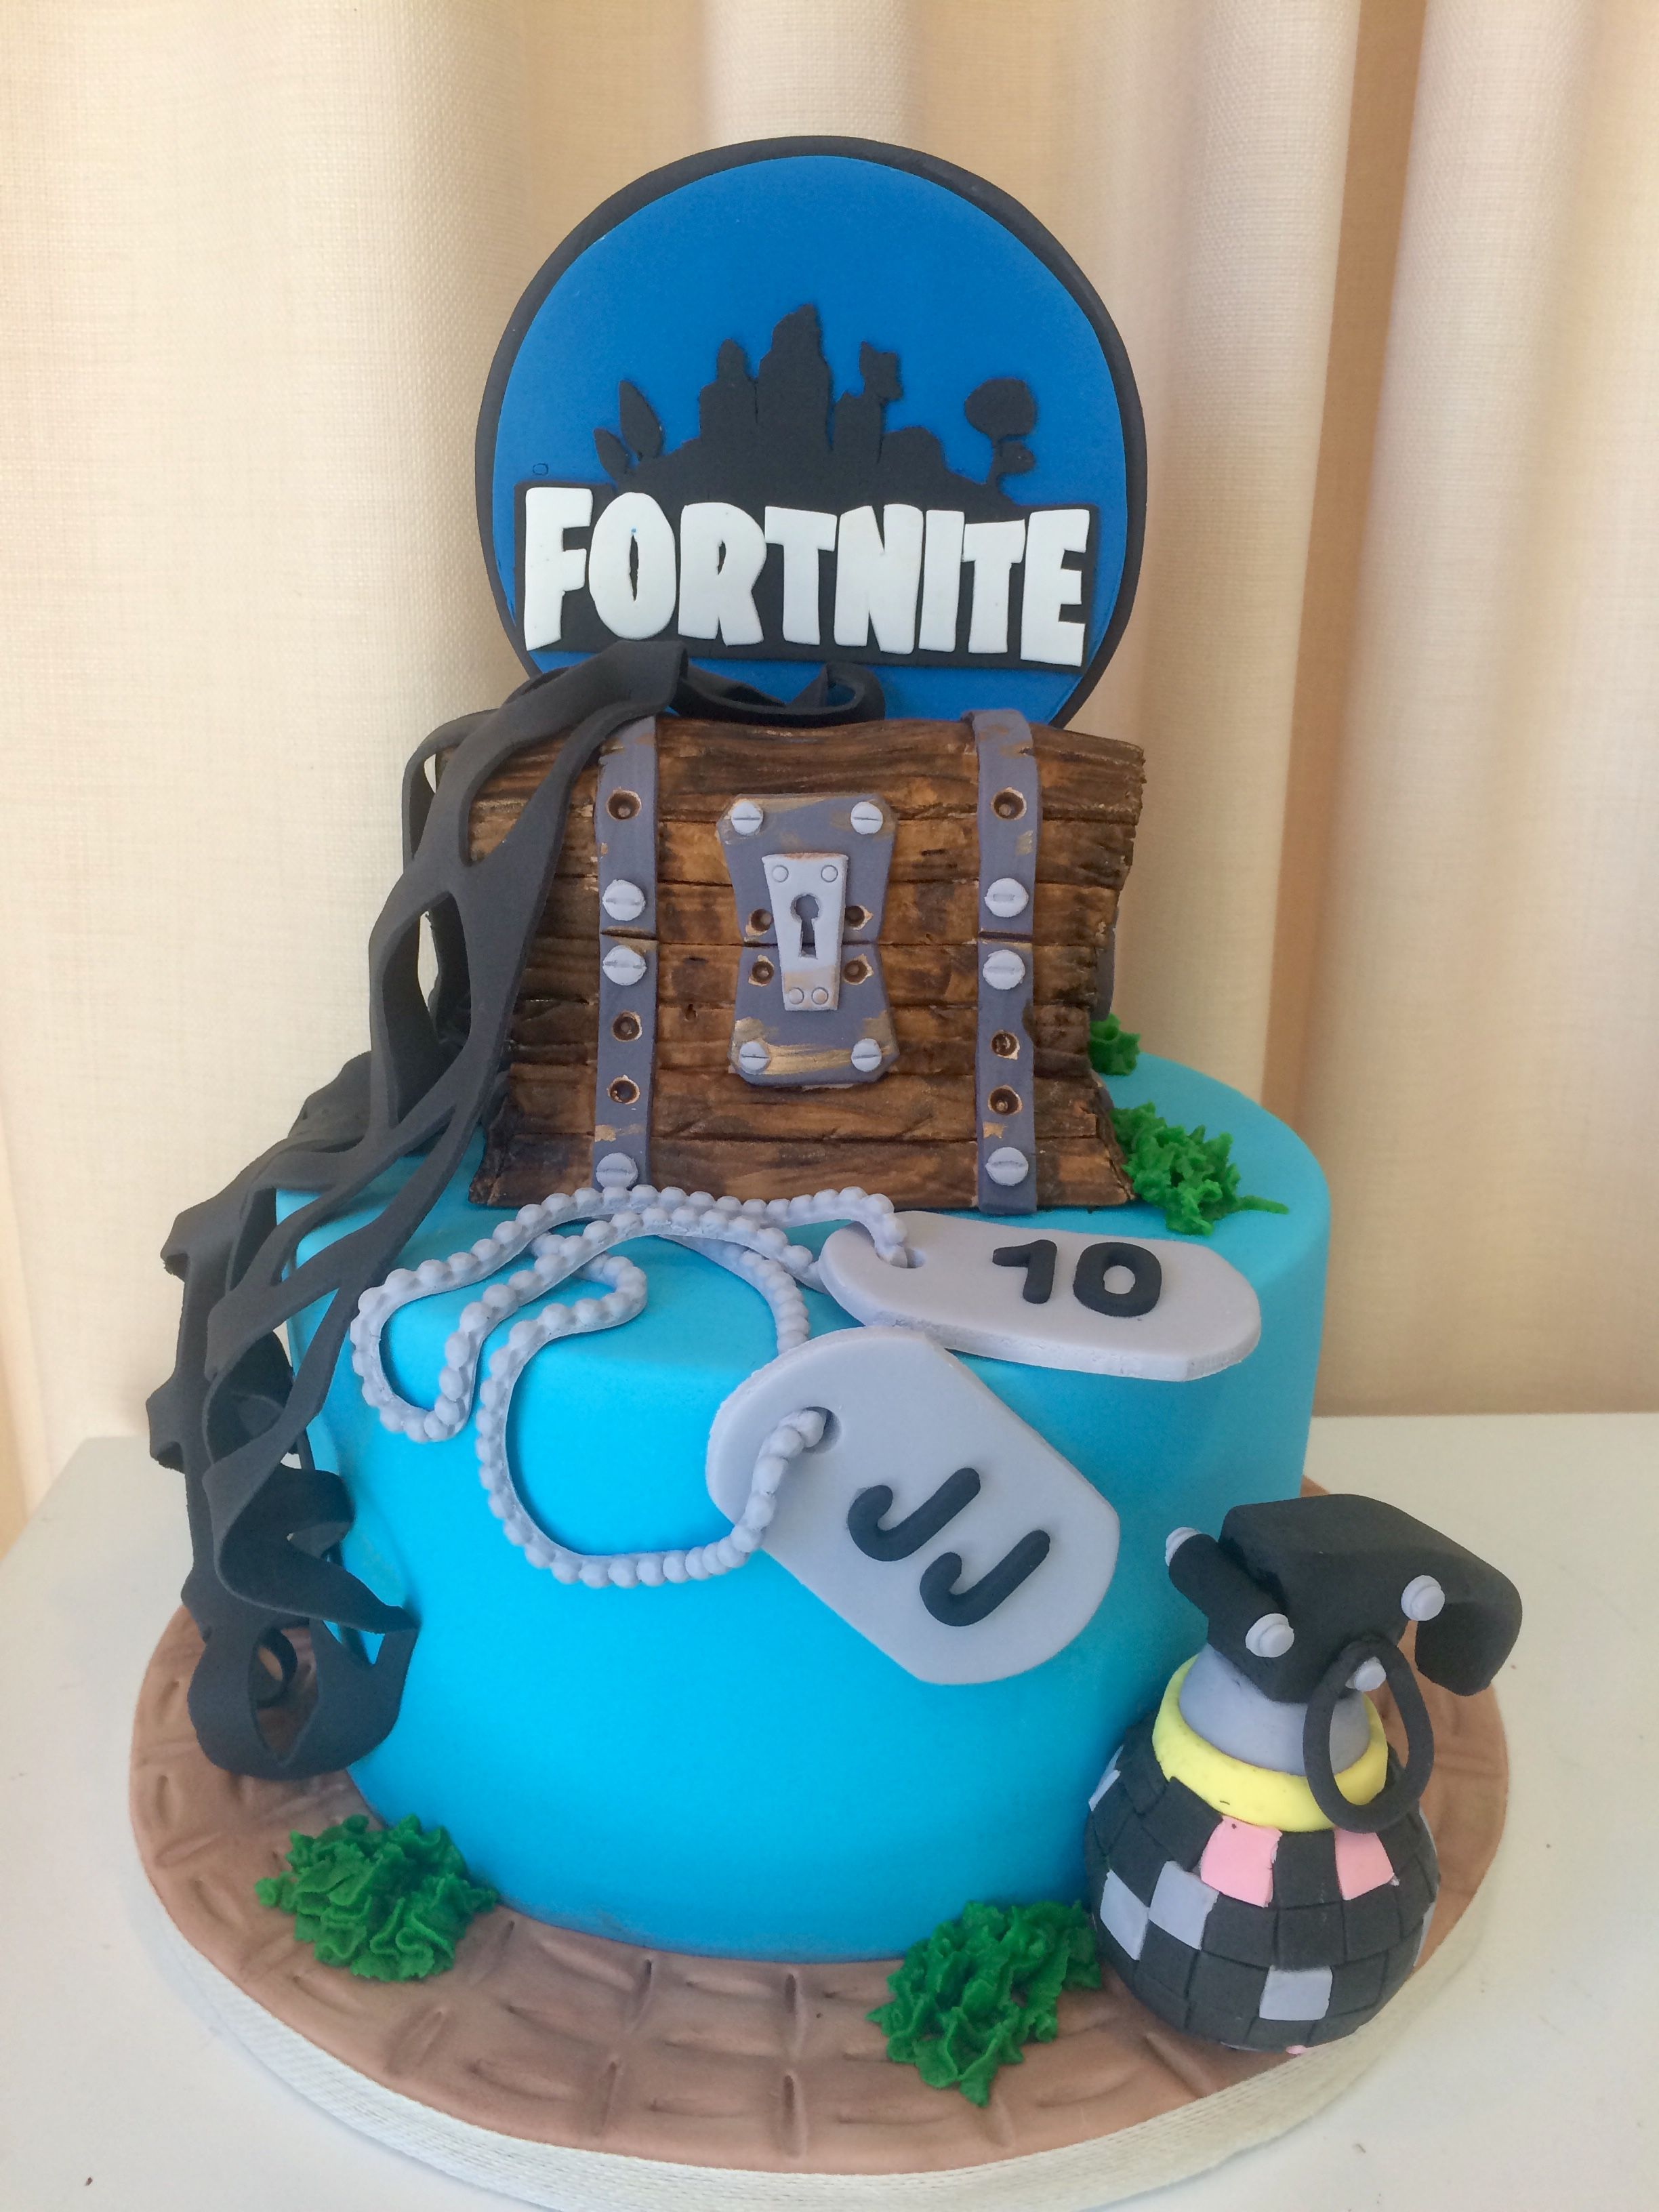 Fornite Cake 9th Birthday Parties 12th Boy Cakes Guava